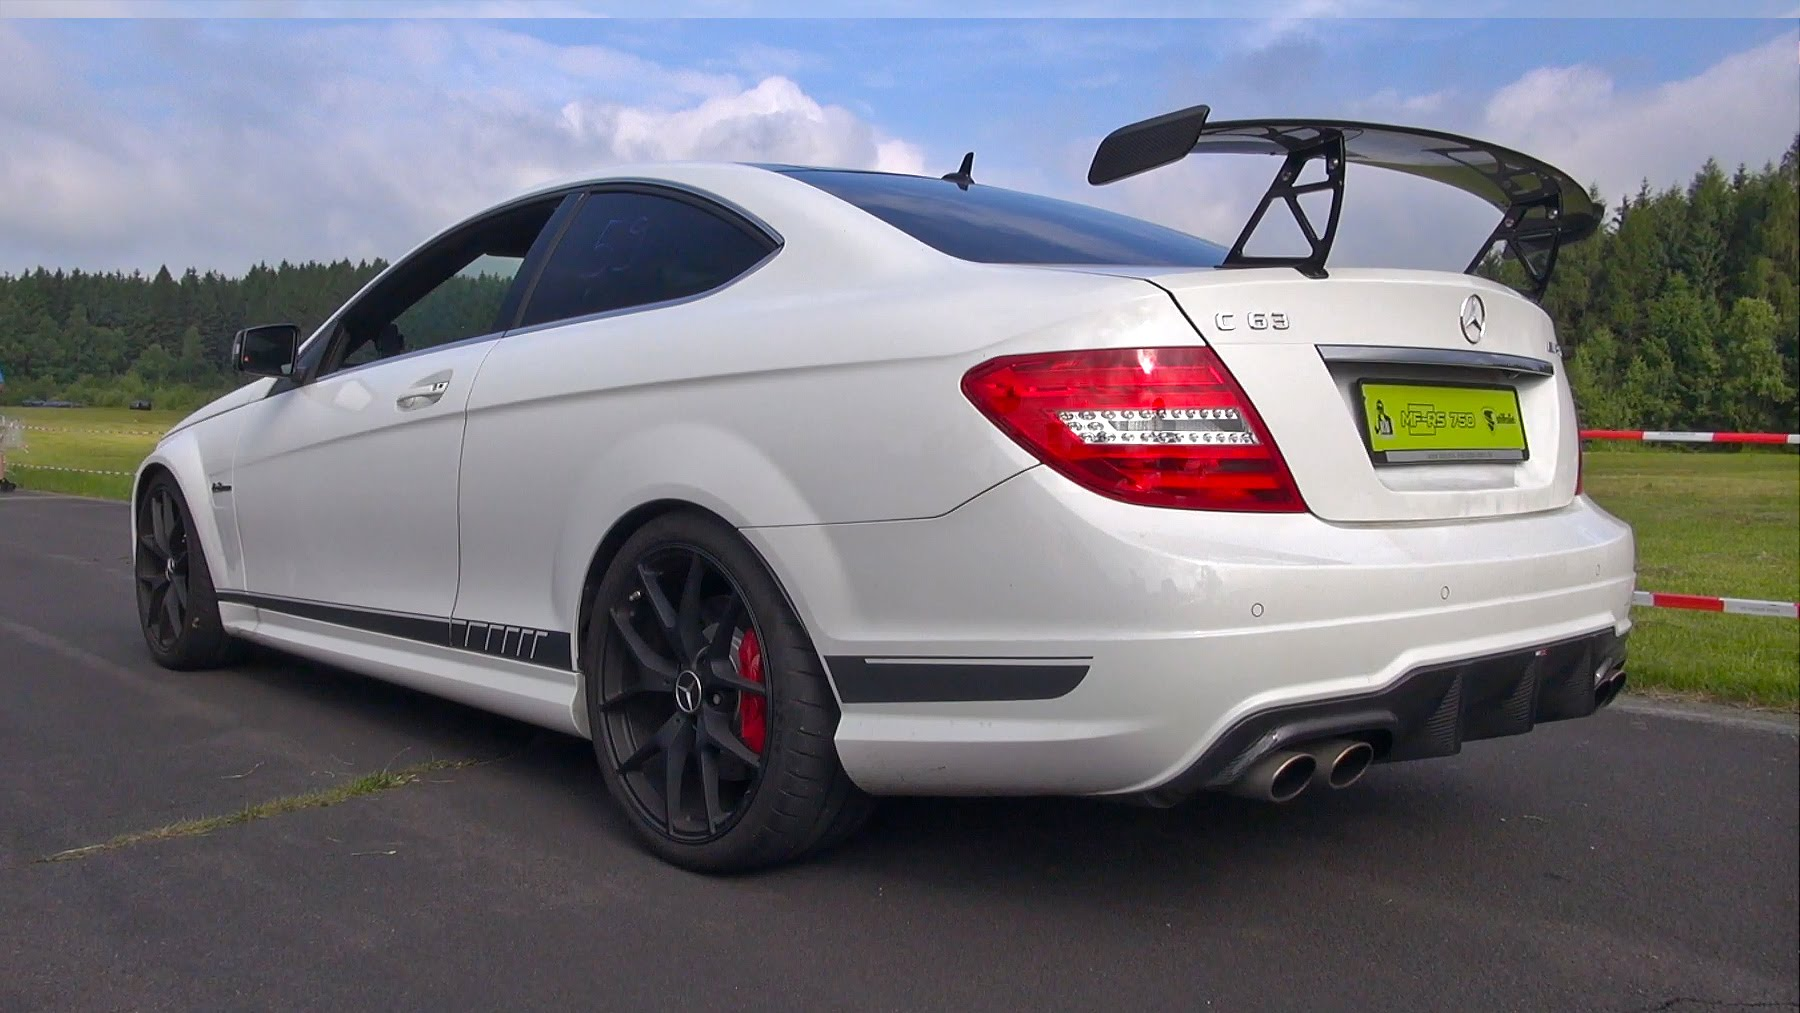 Mercedes-Benz C63 AMG Coupe 507 Edition With AlphaMale